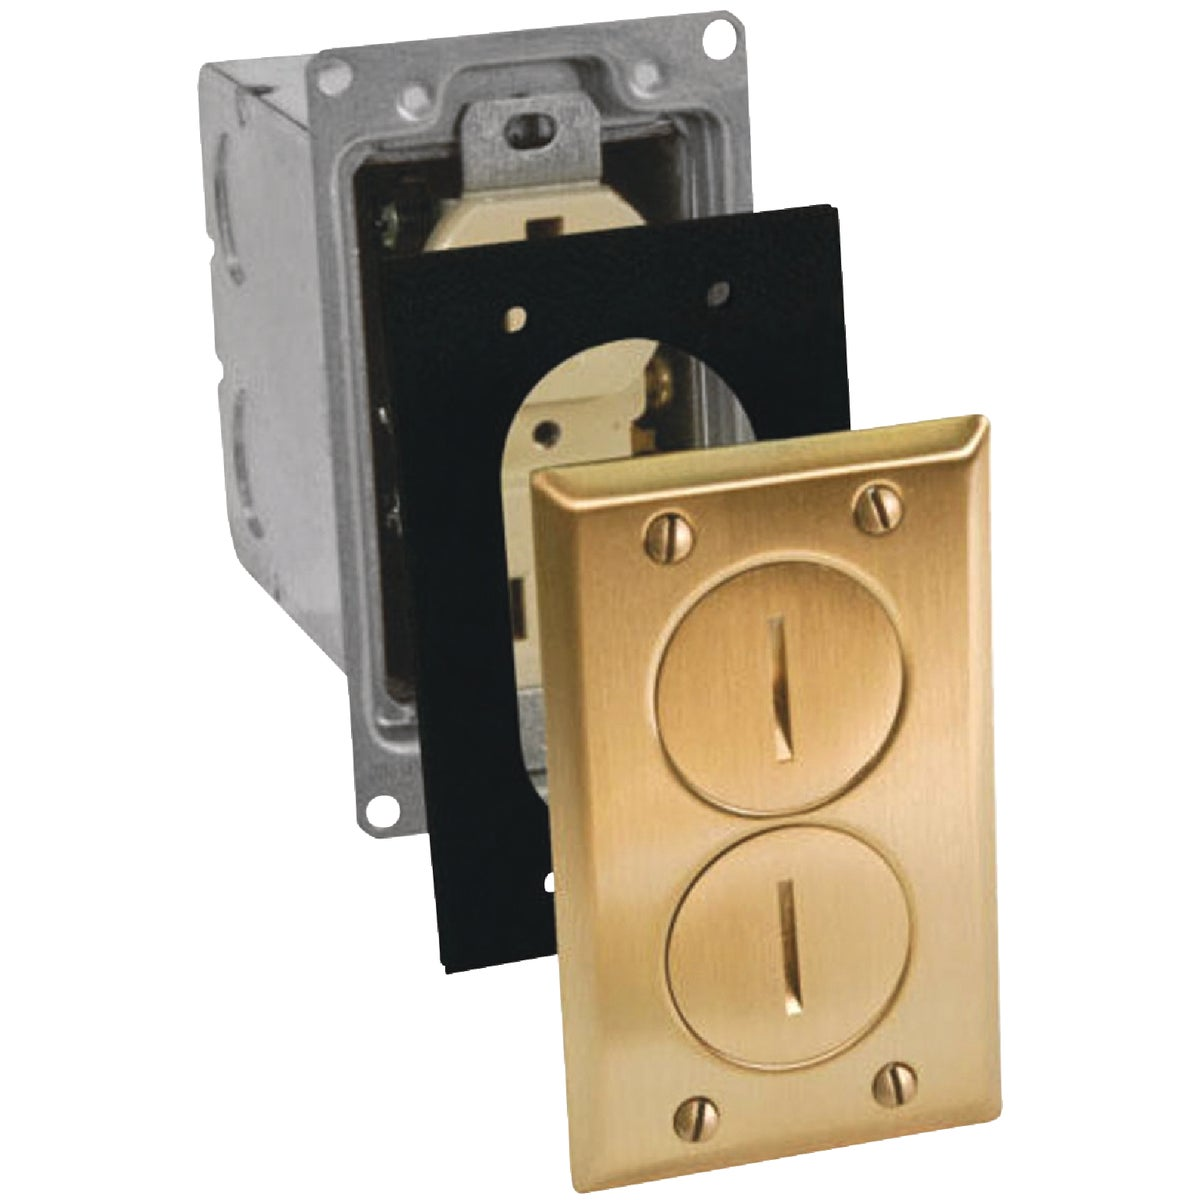 BRASS FLOOR OUTLET KIT - 71WDS by Thomas & Betts